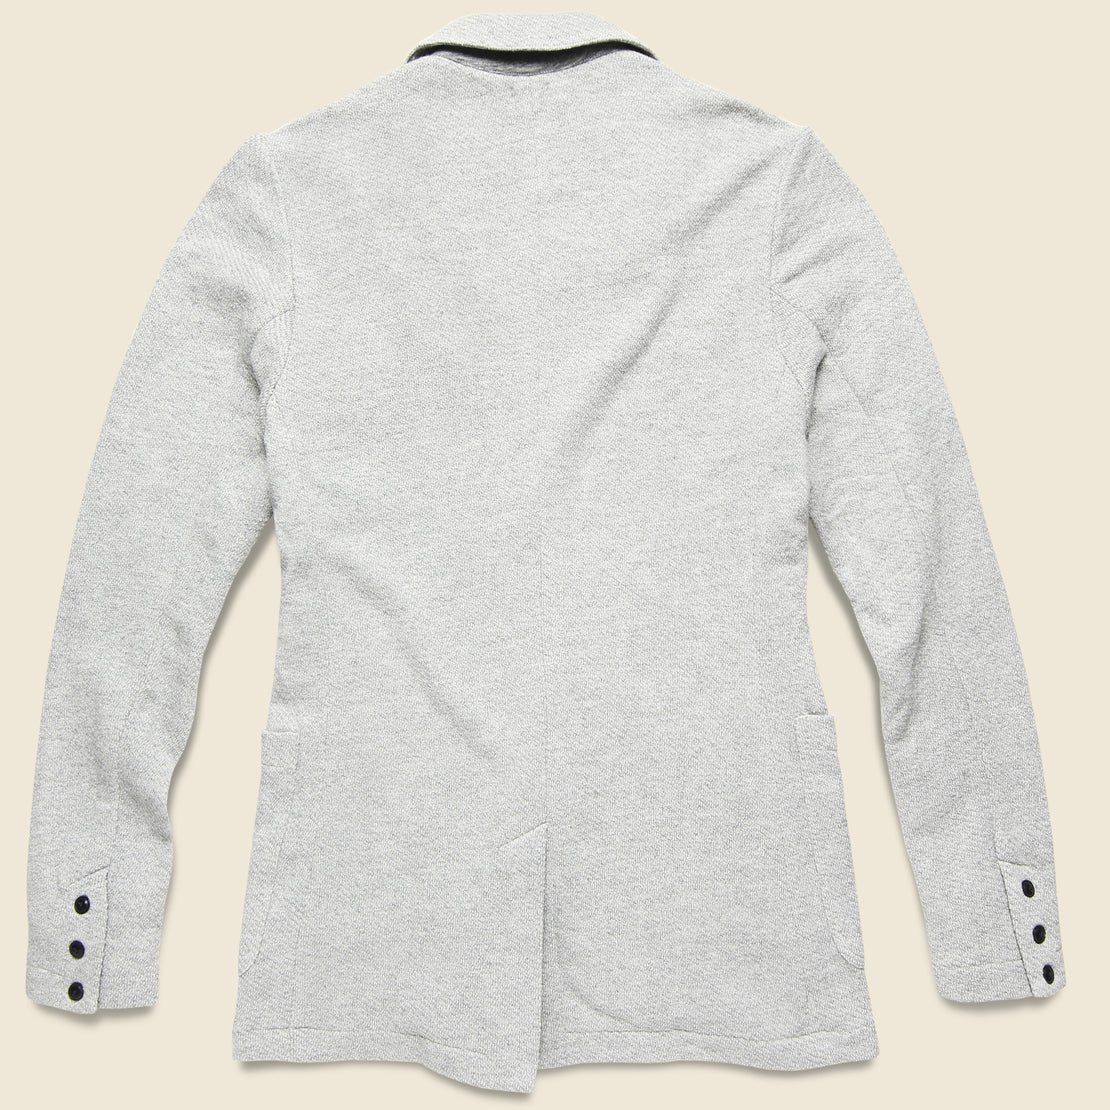 Interloop Blazer - Light Grey Heather